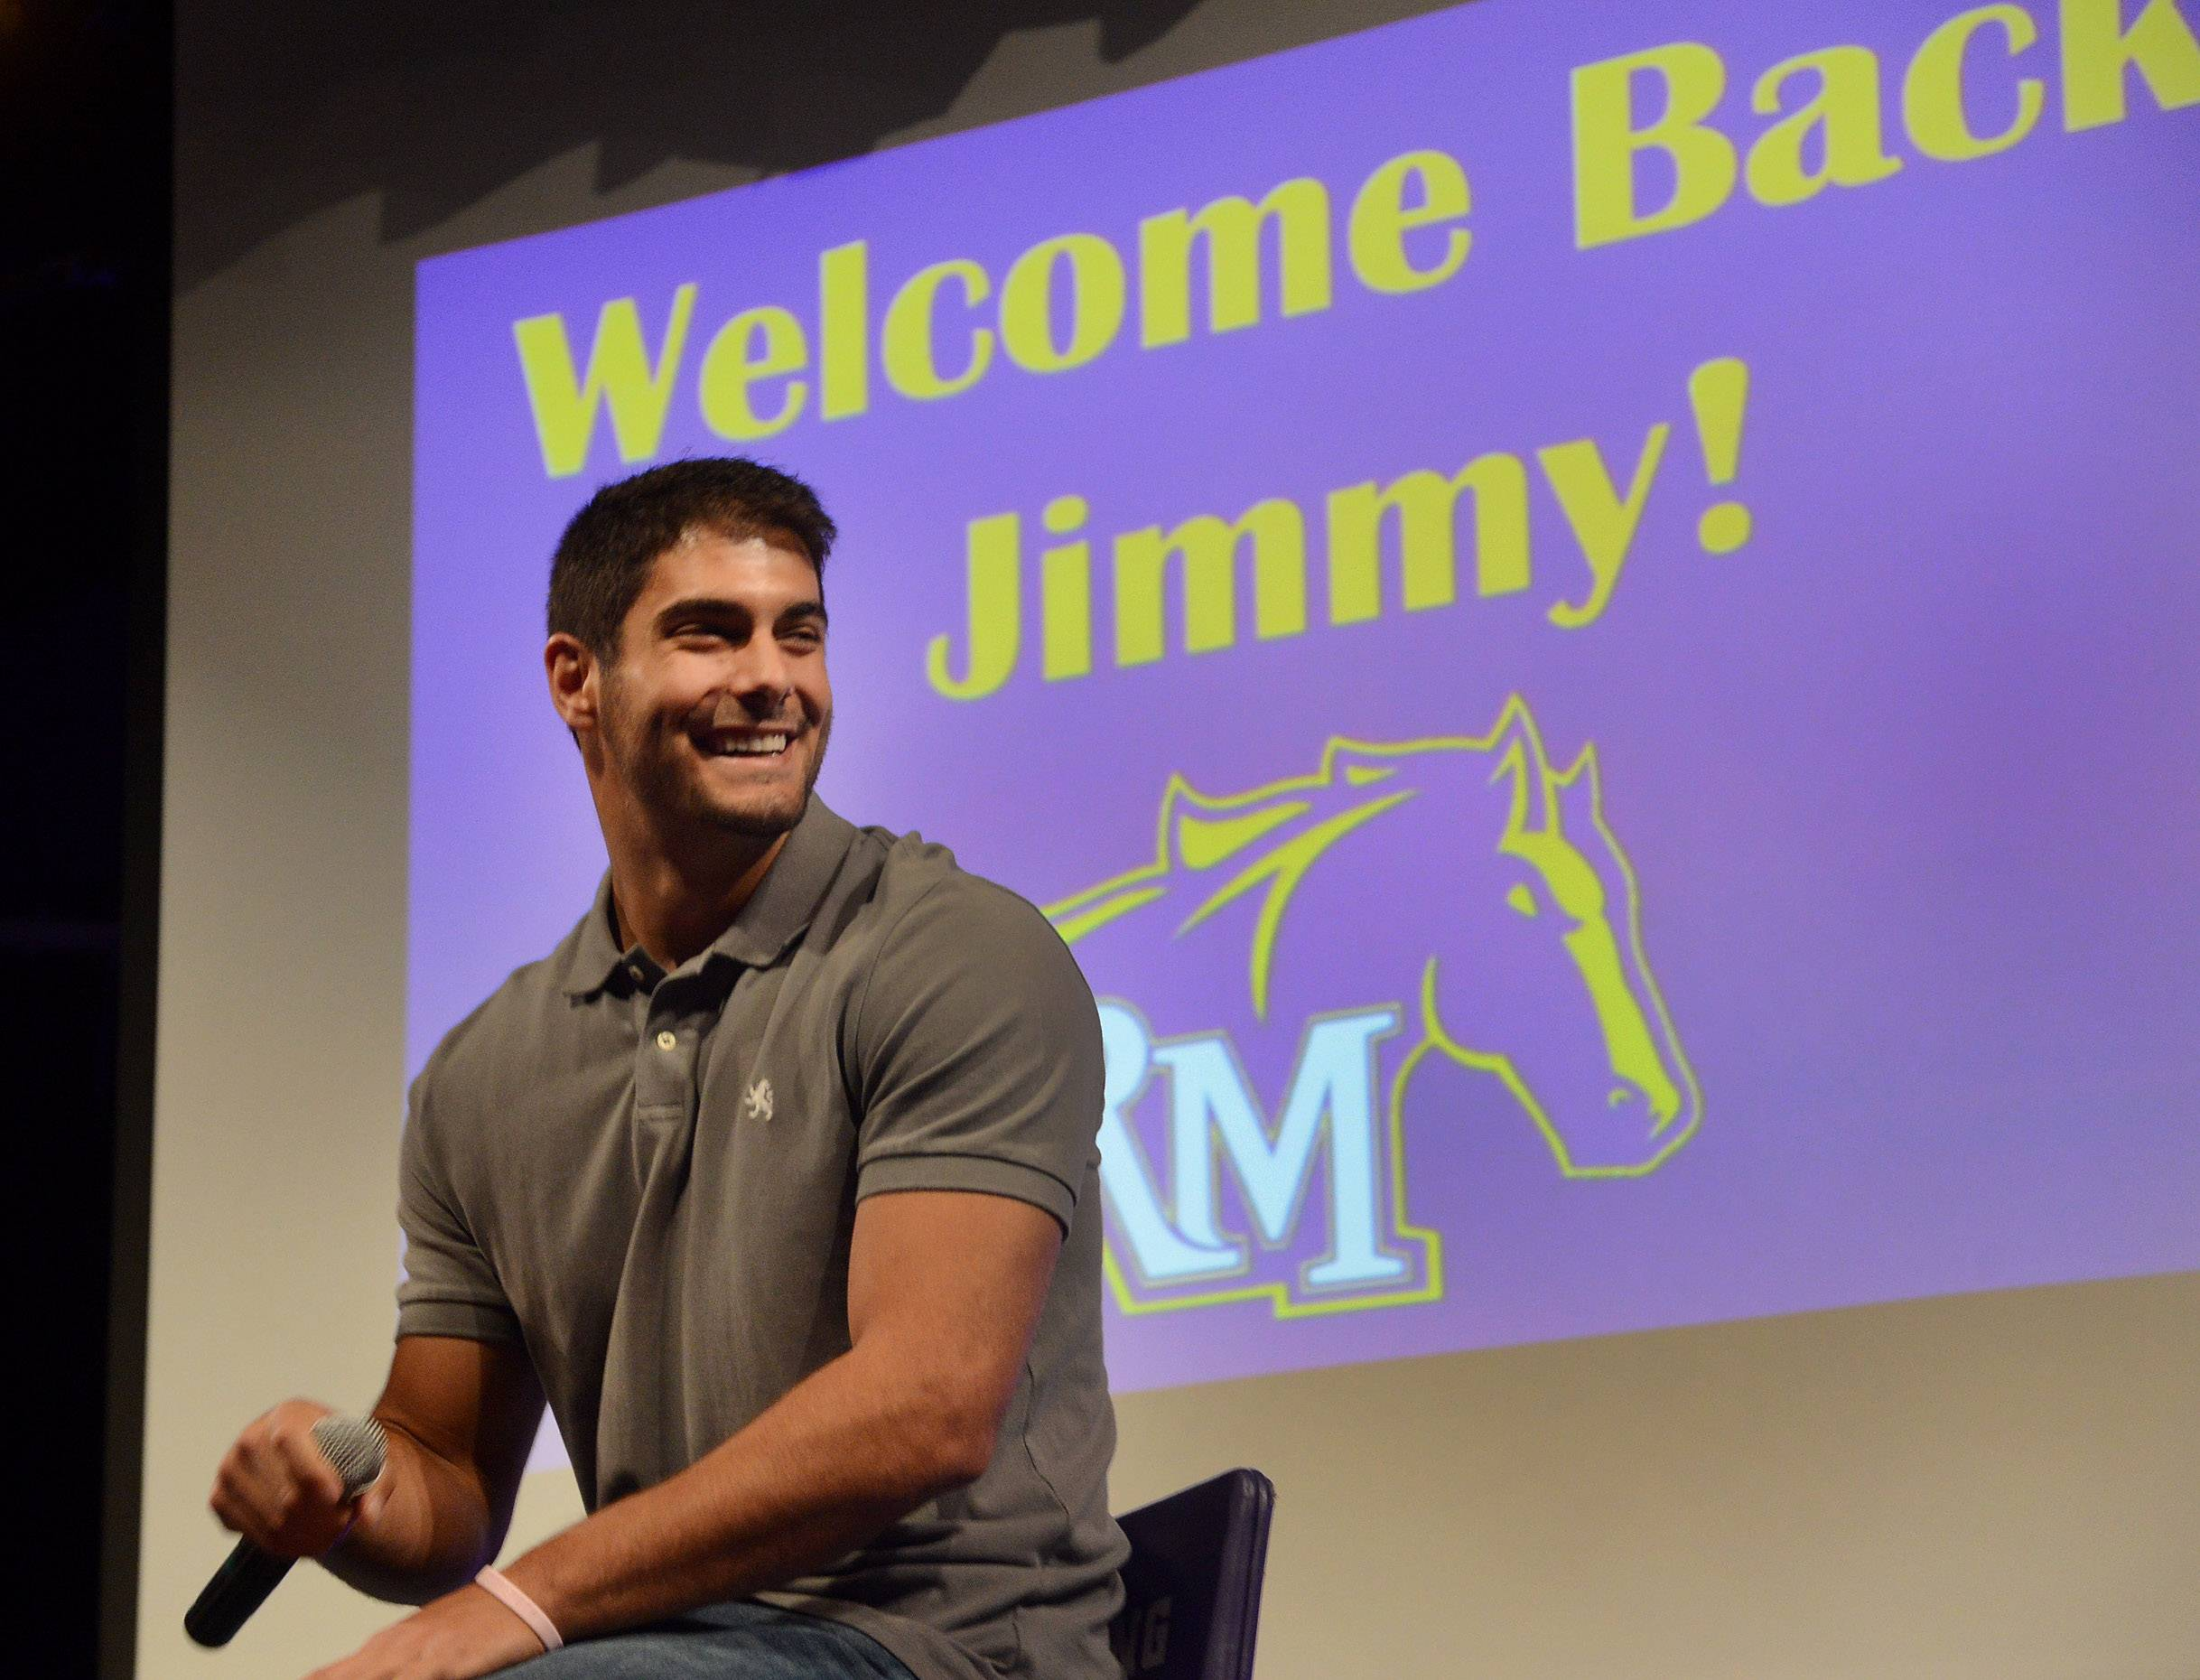 NFL quarterback prospect Jimmy Garappolo returns to Rolling Meadows High School to reunite with former coaches and players and to talk to students.